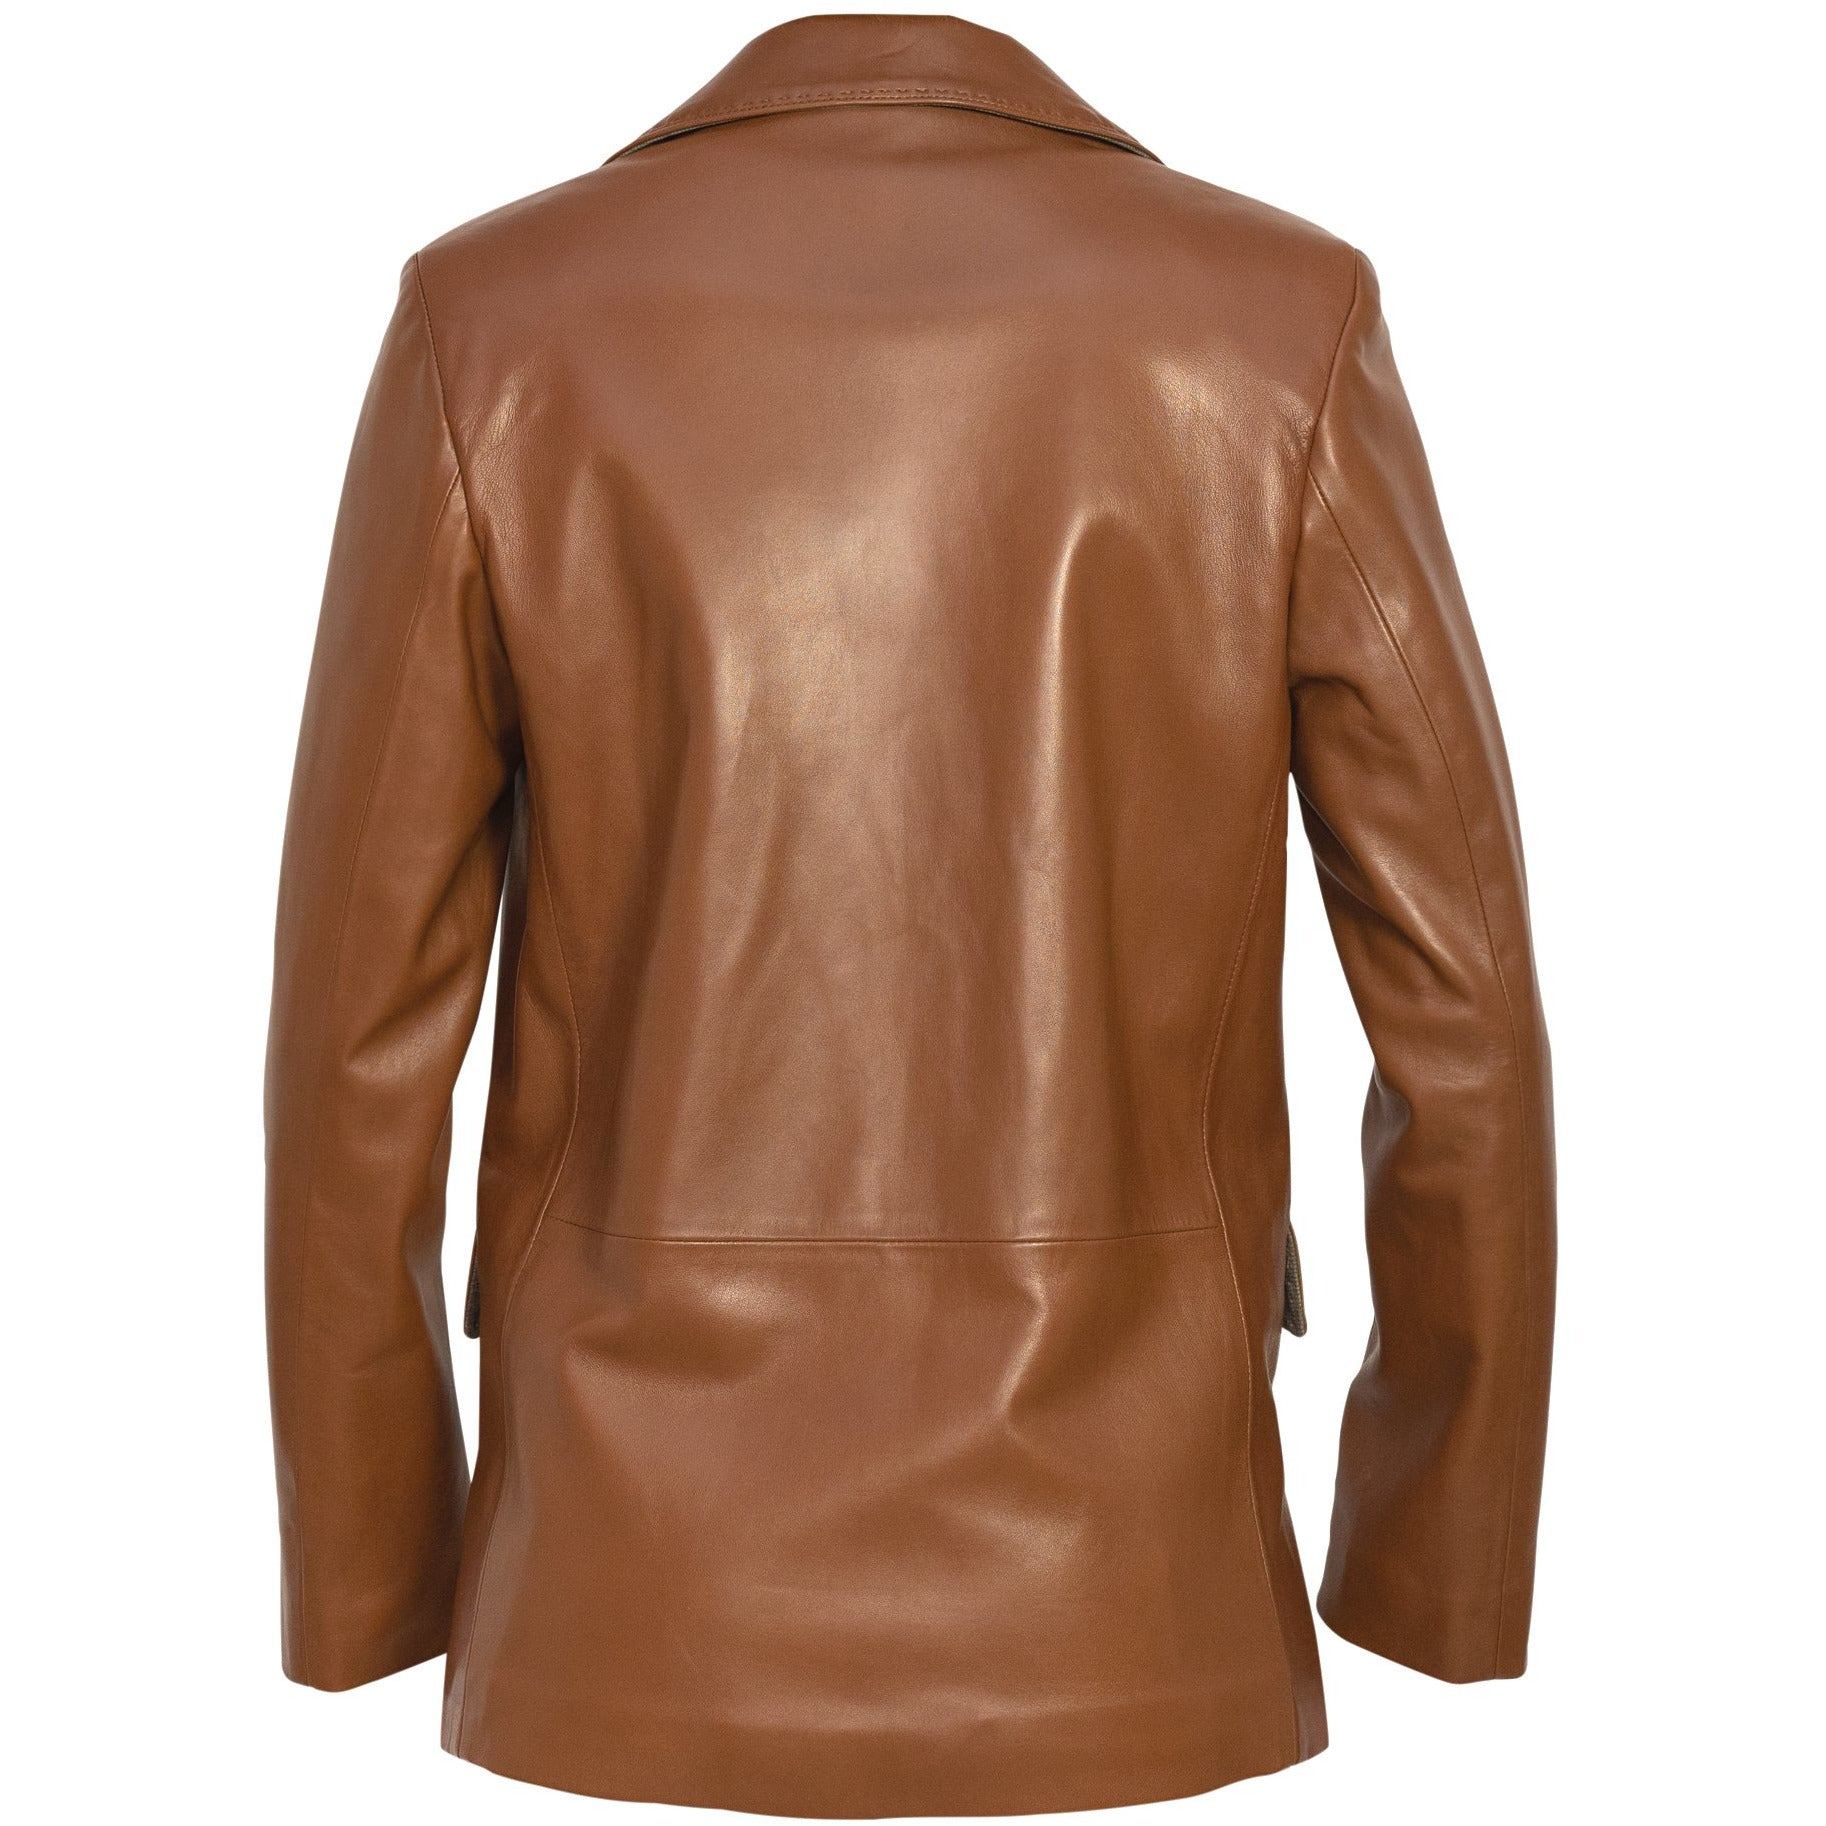 Nappa Leather Cuoio Blazer - New Spring Summer 2020 PRG017W